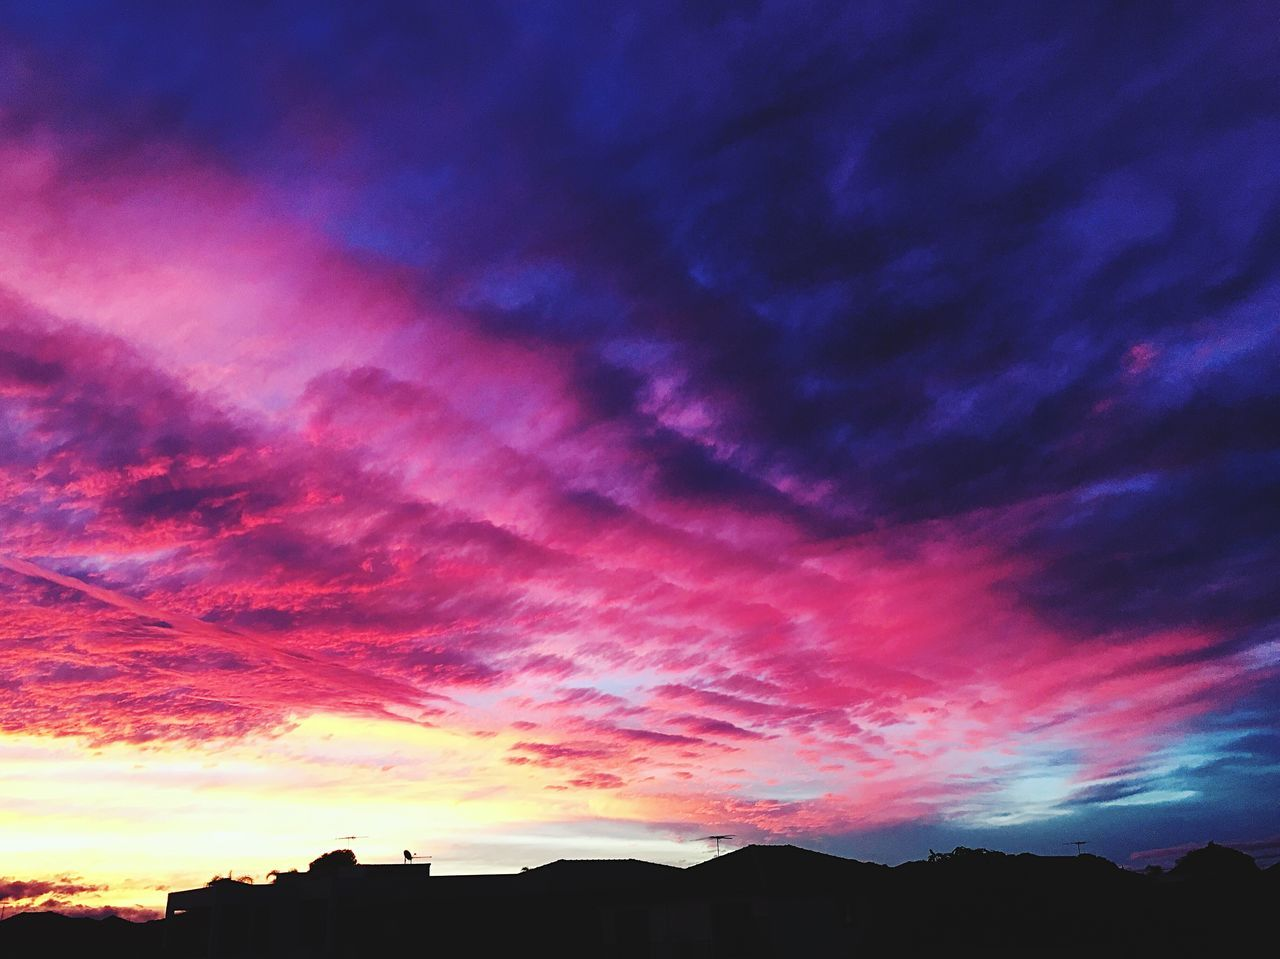 Sky Sky And Clouds Sky_collection Colors Colorful Pink Purple Outdoors Skylovers Pinksky Sunset Sunset_collection Sydney Iphonephotography